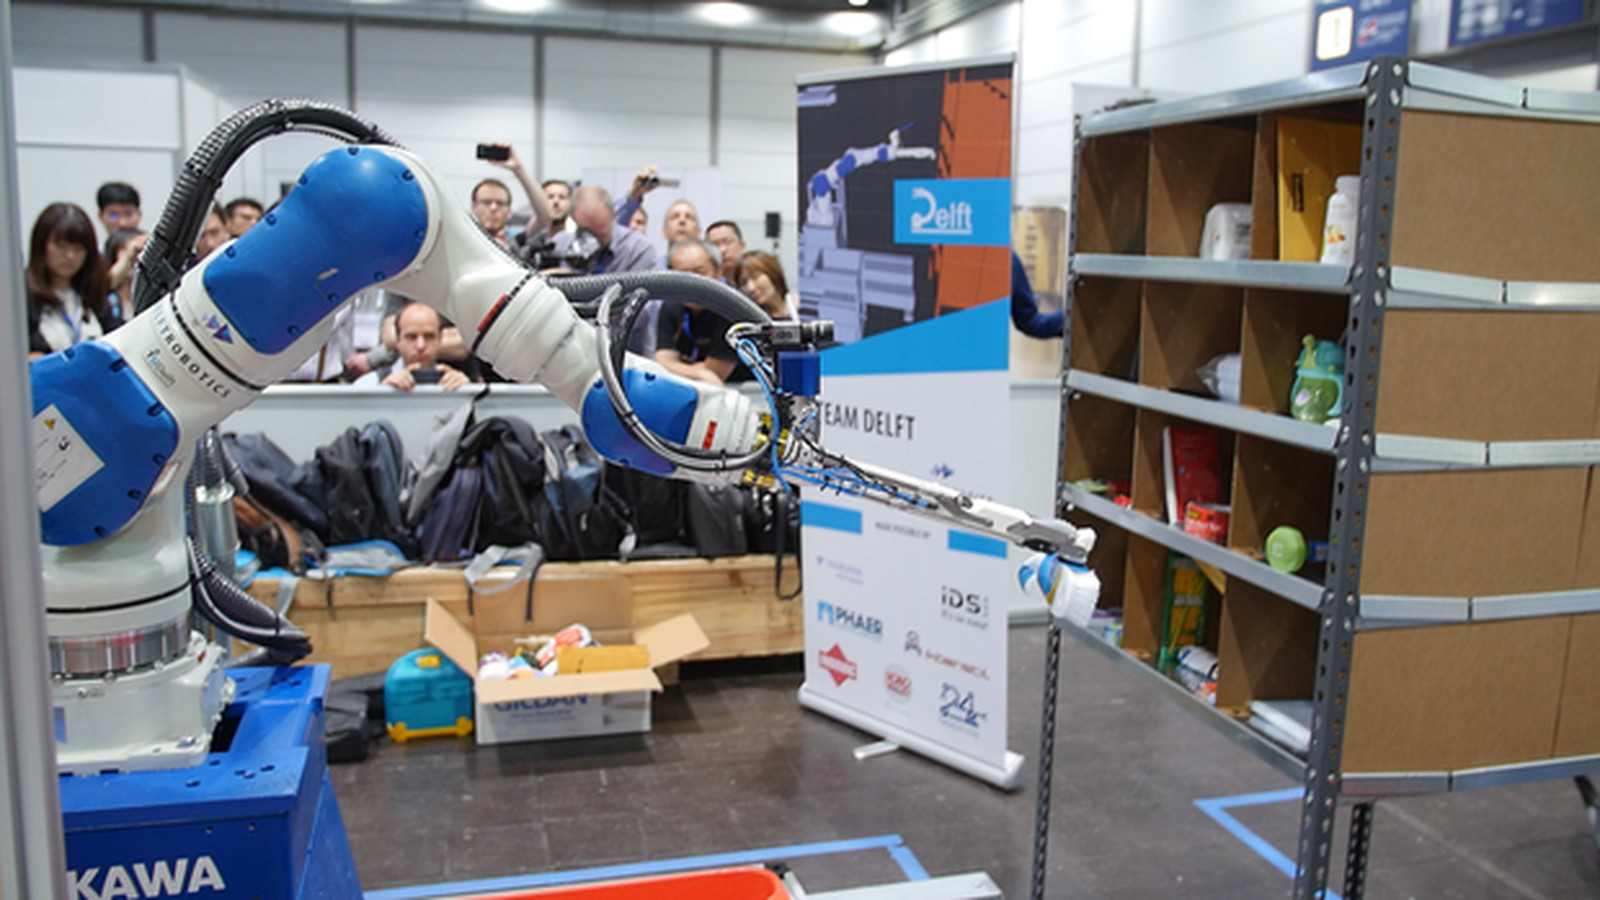 Amazon's latest robot champion uses deep learning to stock shelves